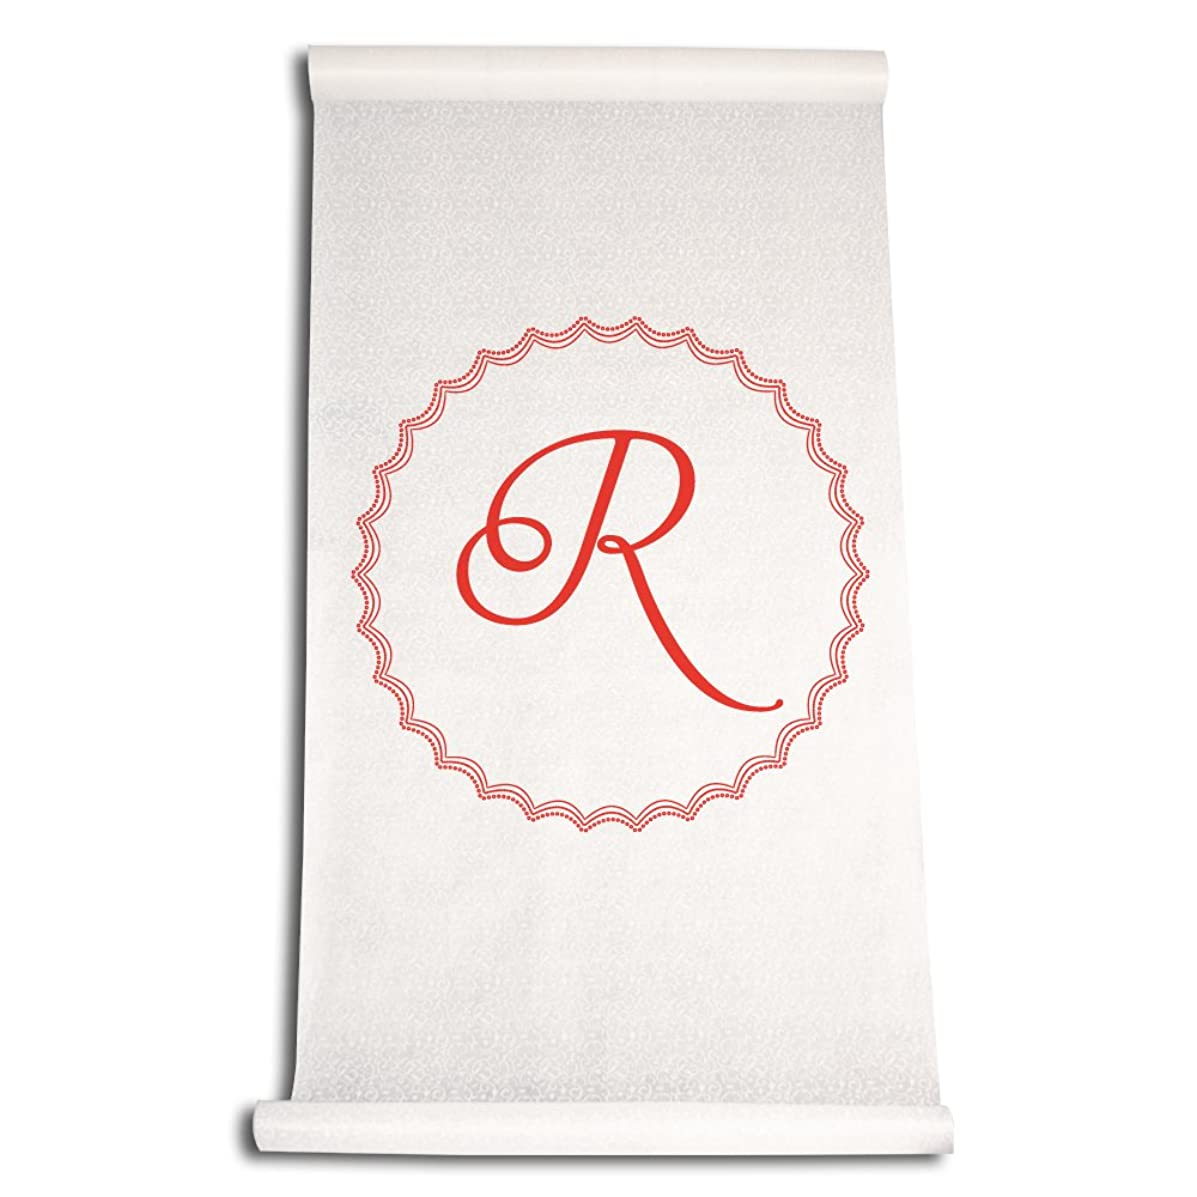 Ivy Lane Design Wedding Accessories Aisle Runner with Initial, Letter R, Red